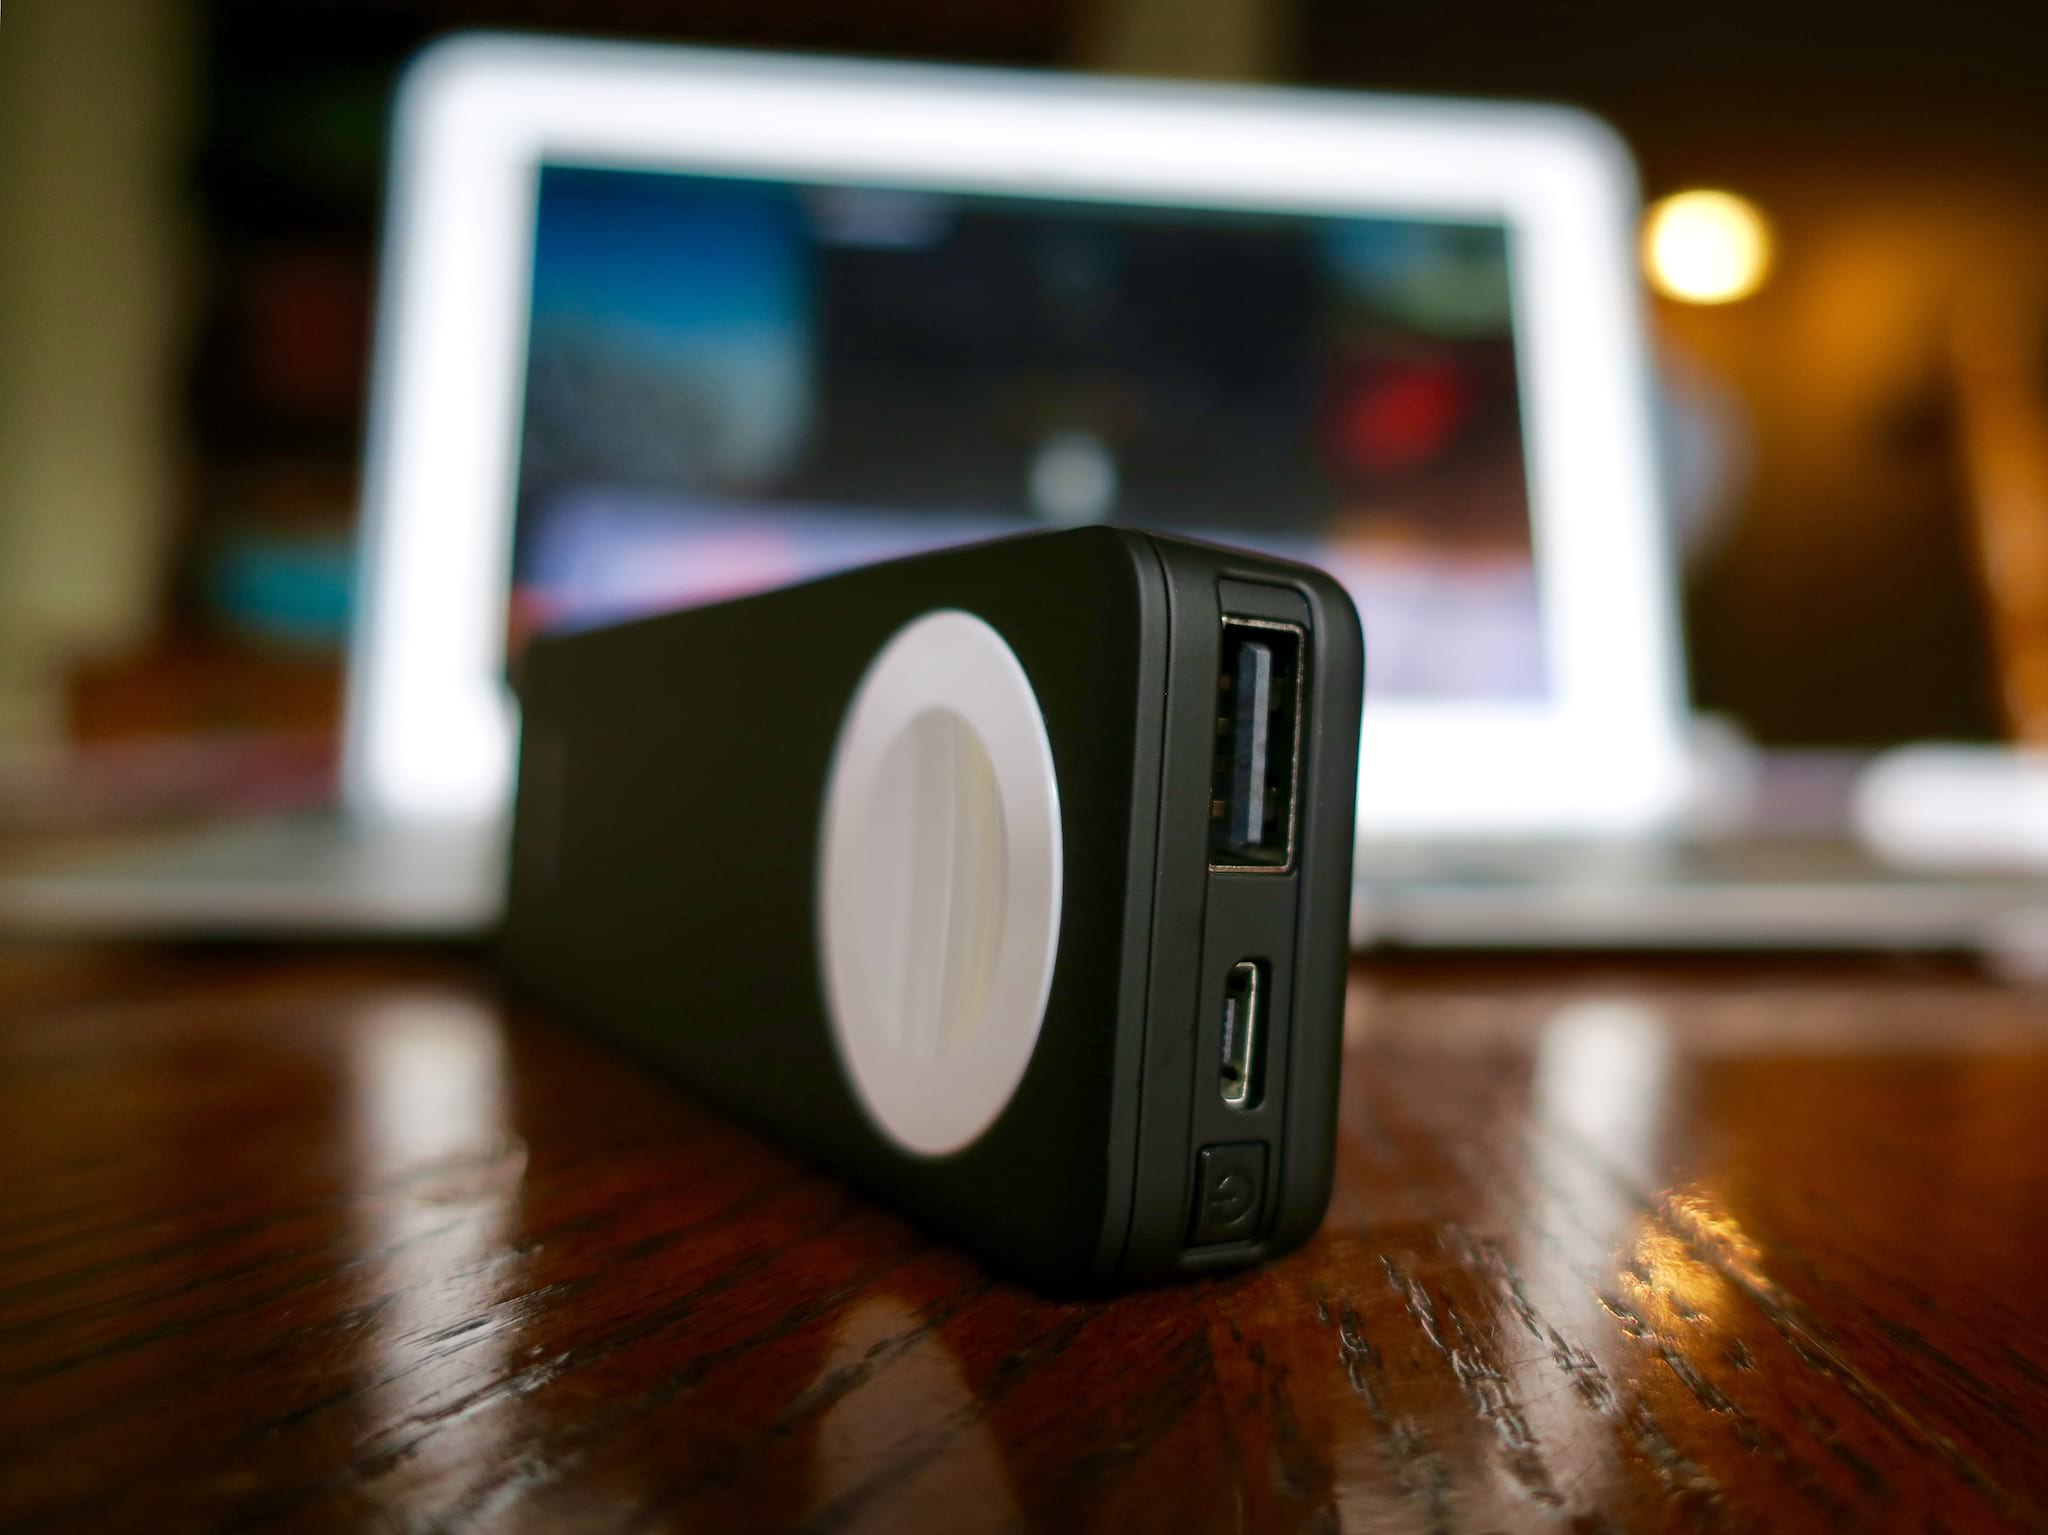 Zens Power Bank's Power Button, USB, and Micro-USB Ports